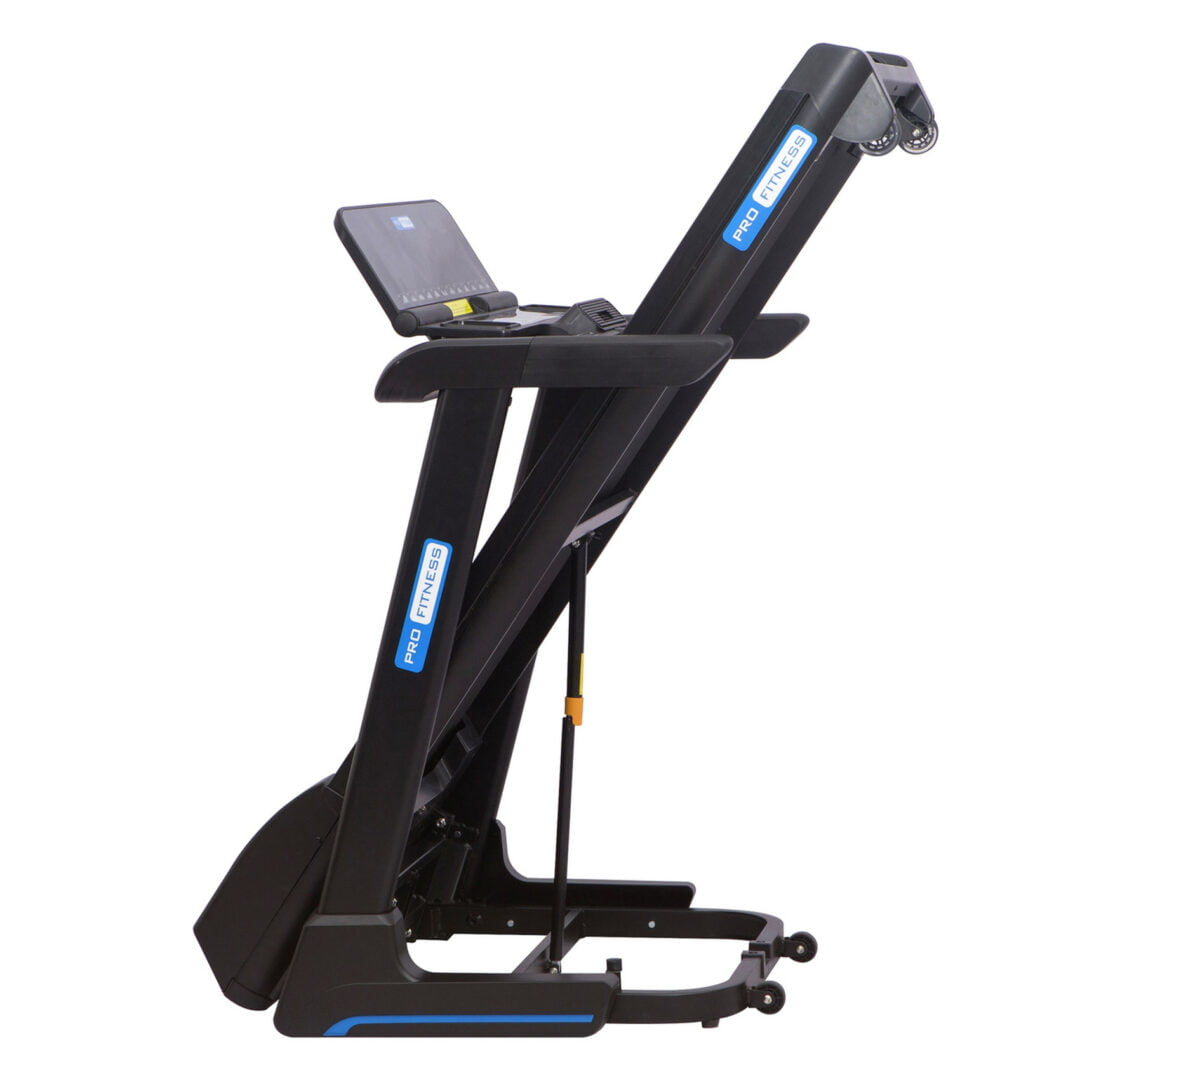 Pro Fitness T3000 folded away for storage